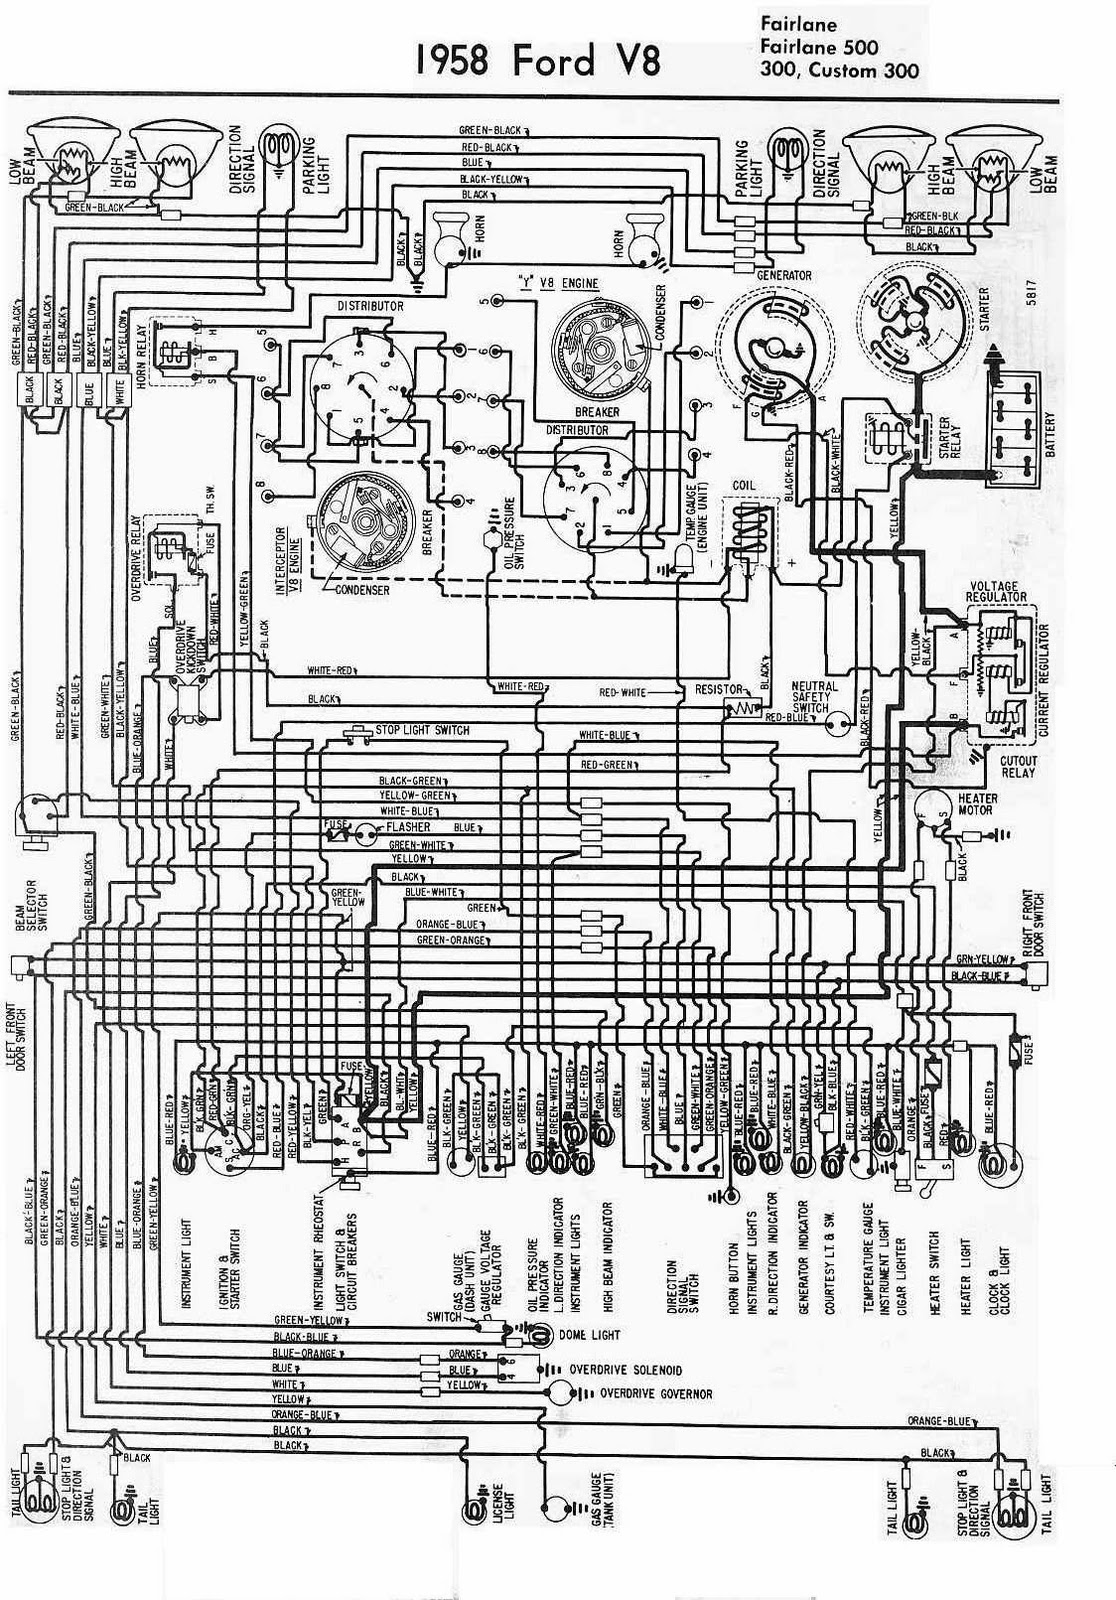 Electrical Wiring Diagram For 1958 Ford V8 Wiring Diagram